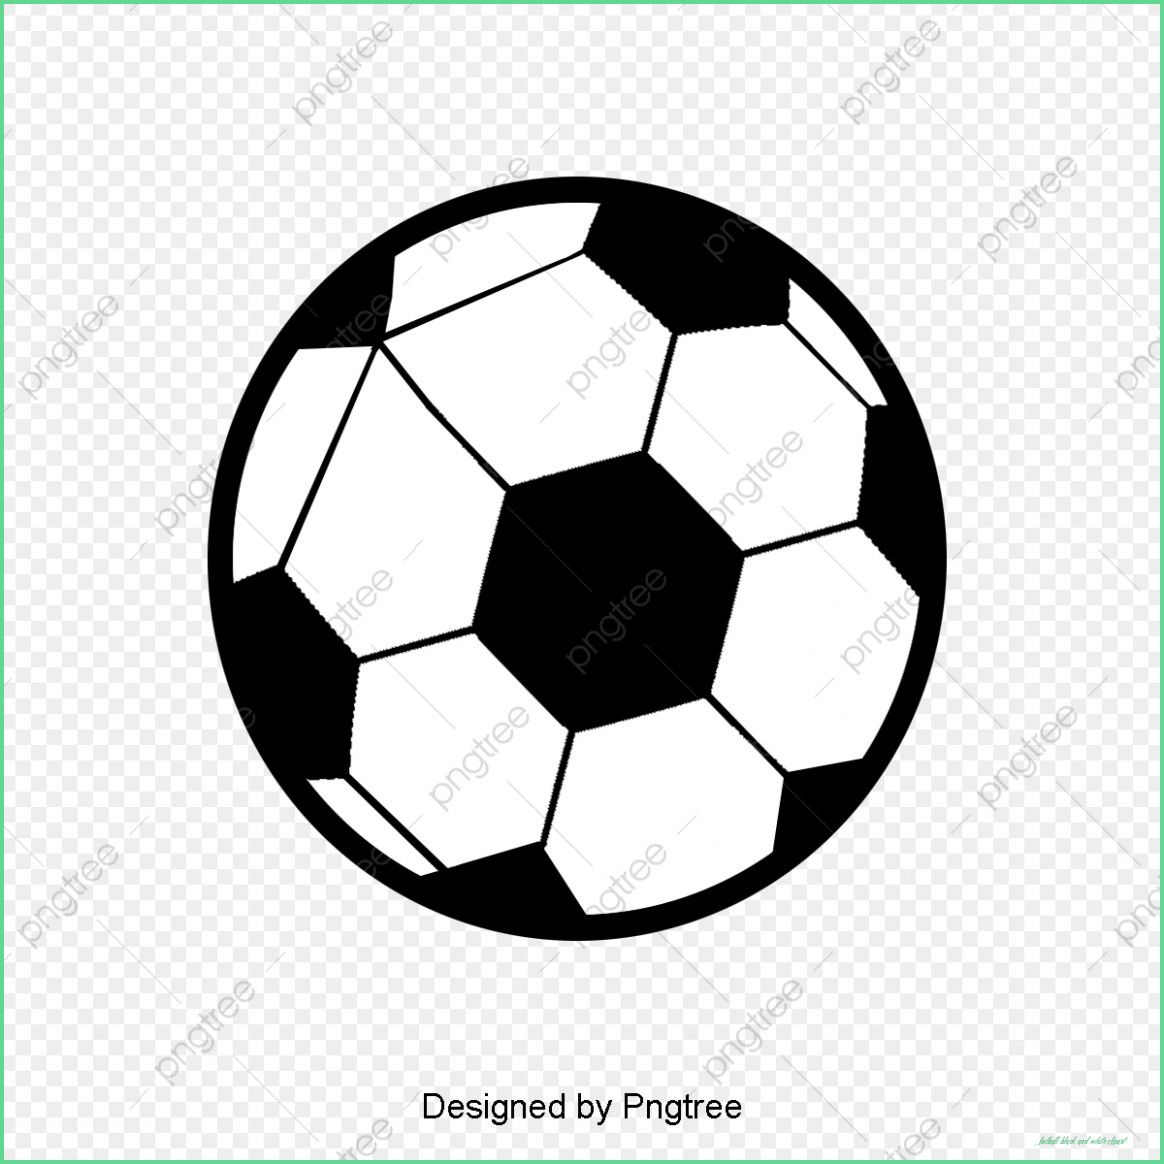 Quiz How Much Do You Know About Football Black And White Clipart Football Black And White Clipart Htt In 2020 Black And White Football Football Logo Soccer Drawing